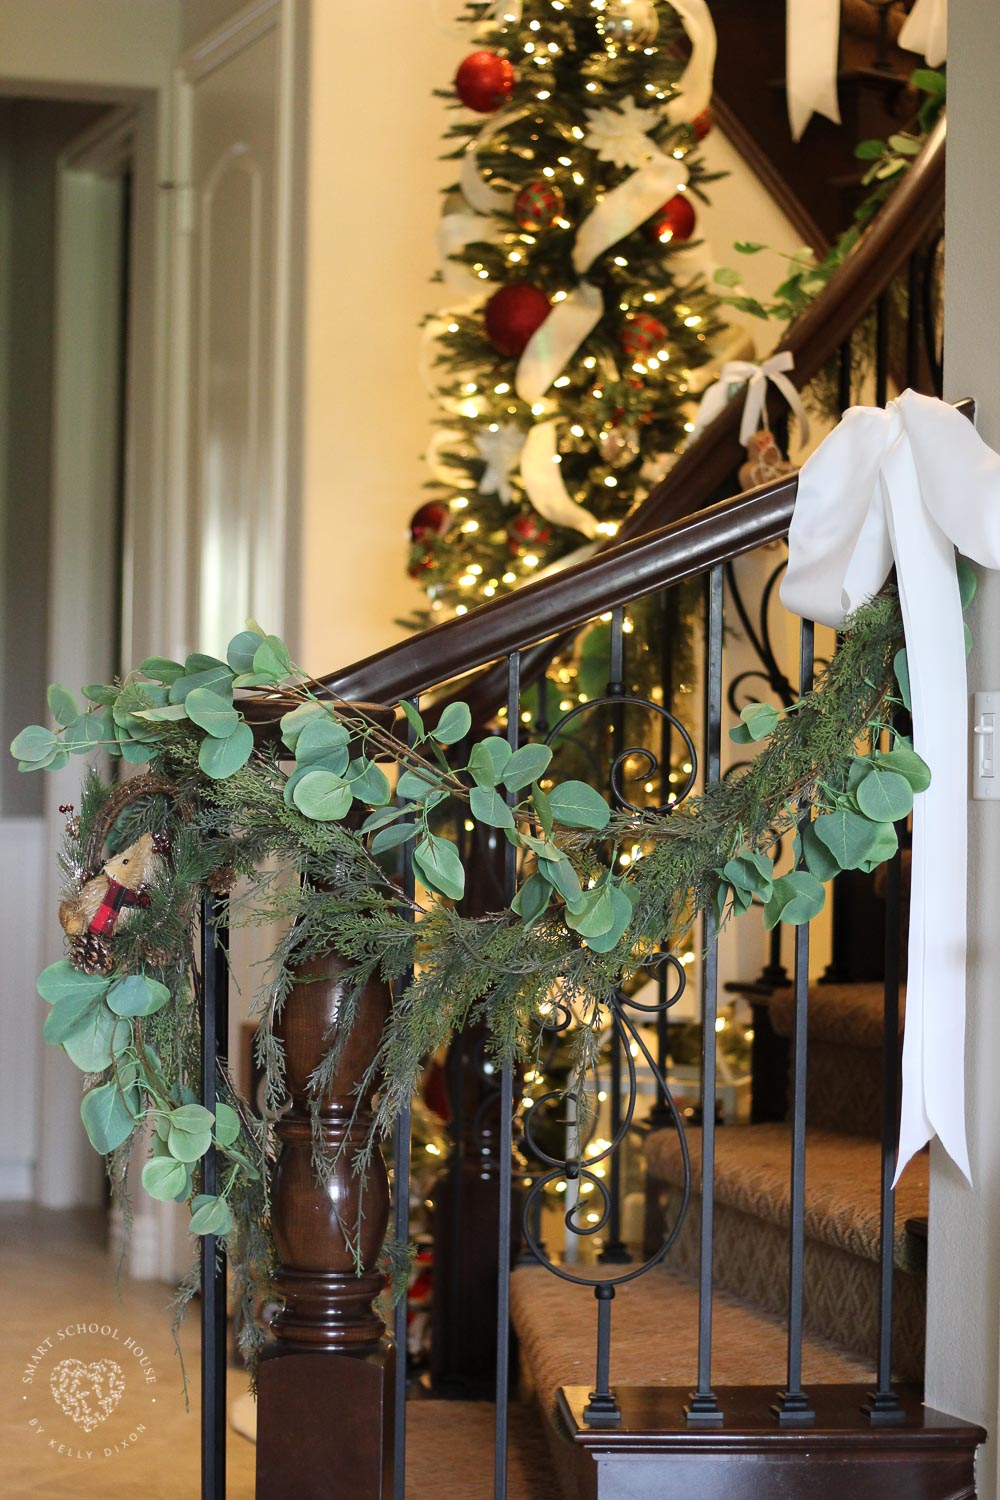 Eucalyptus Garland for Christmas tied with white ribbons. Simple and beautiful garland idea for Christmas. #ChristmasGarland #EucalyptusGarland